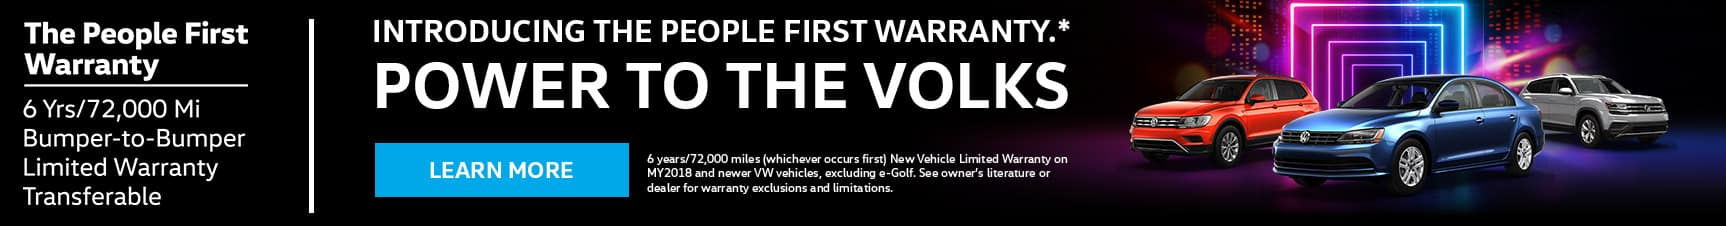 volkswagon peoples first warranty